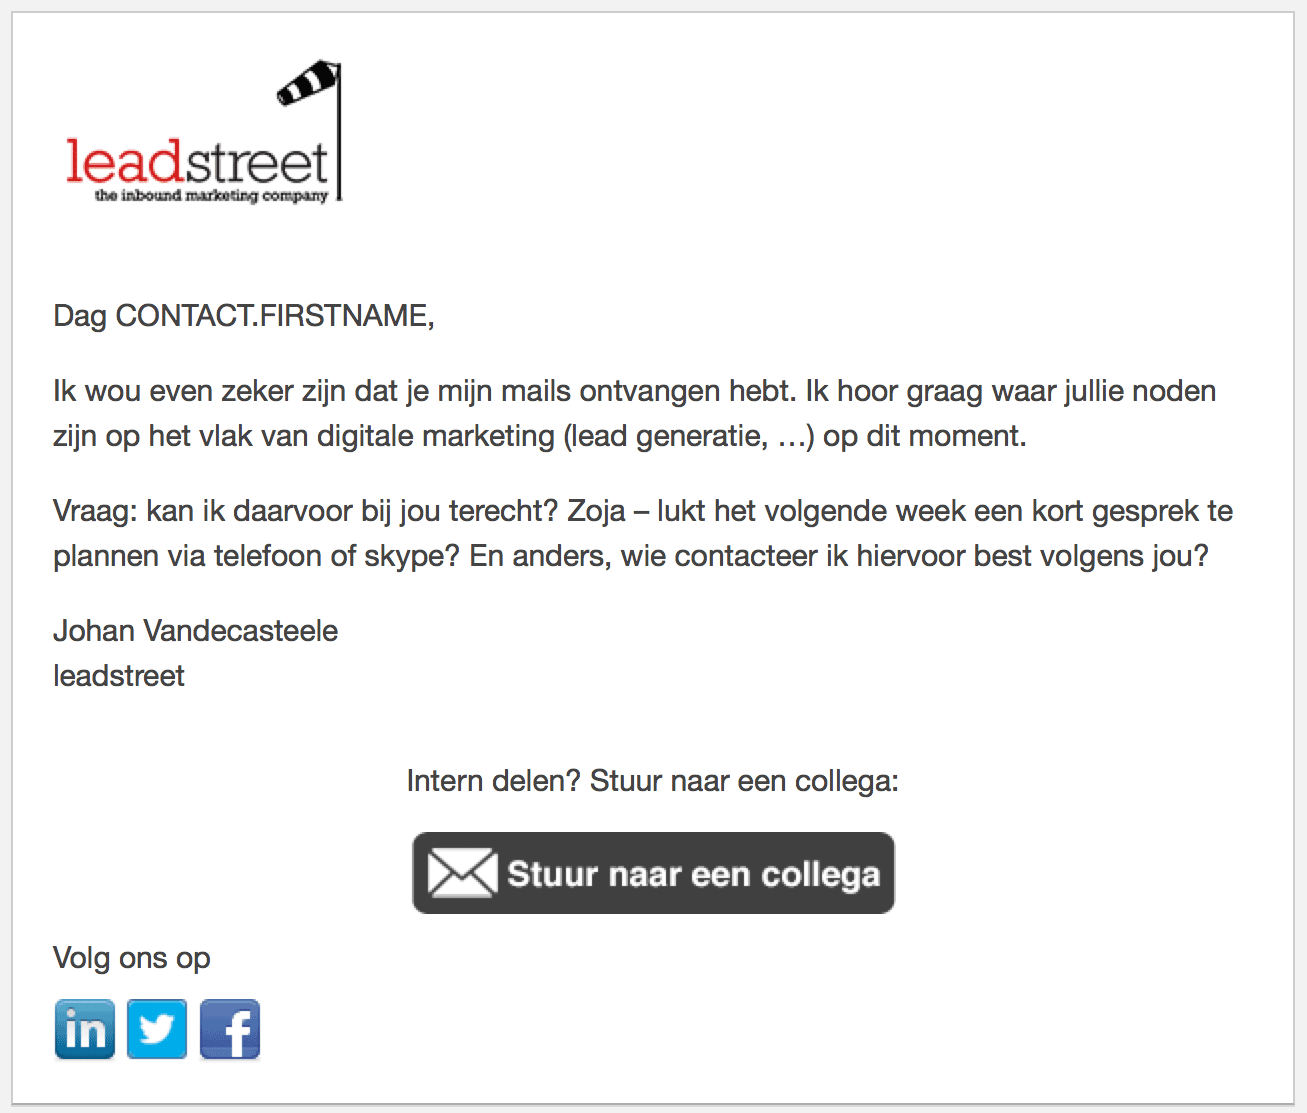 drip-campagne-kwalificeer-of-je-leads-salesklaar-zijn-mail-3.png